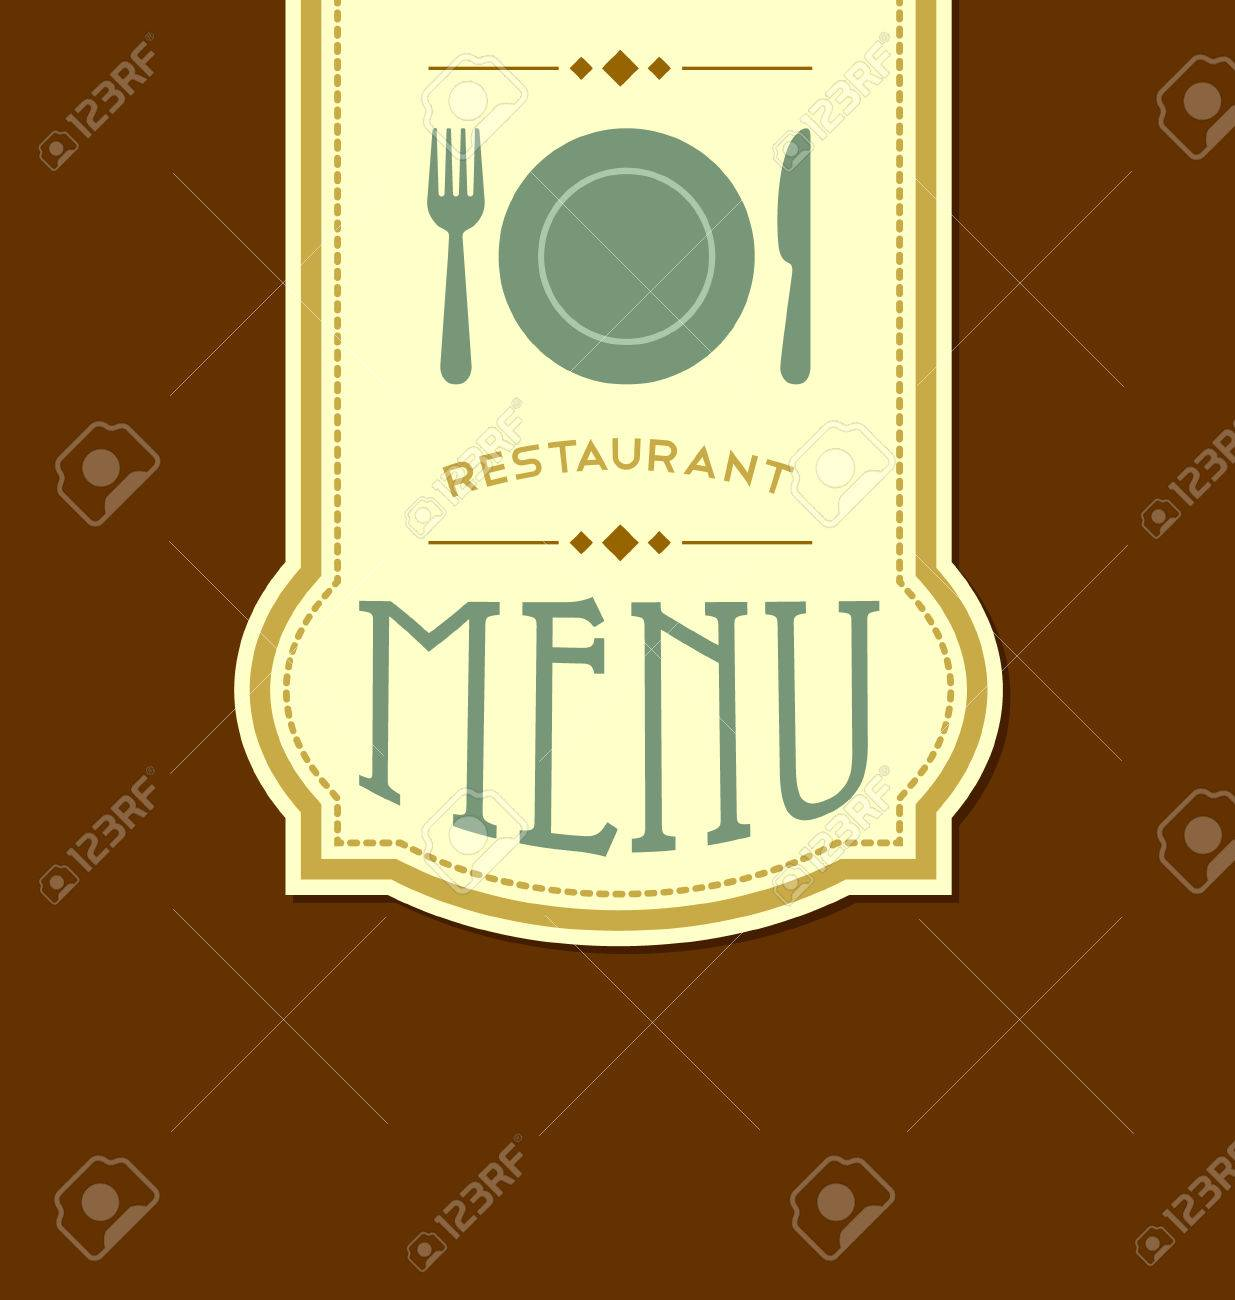 restaurant menu cover template in retro style royalty free cliparts